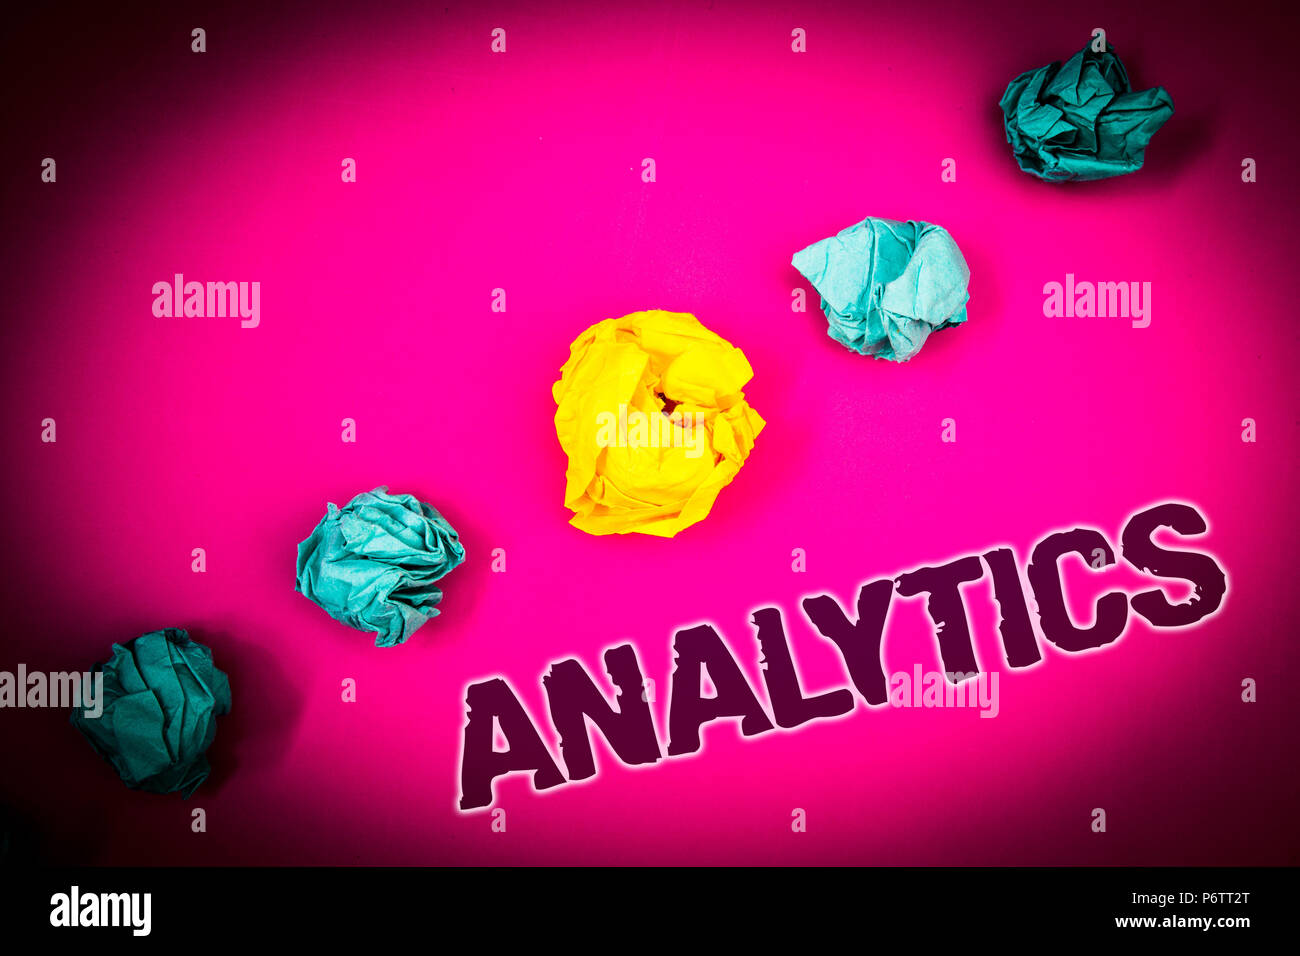 Text sign showing Analytics. Conceptual photo Data Analysis Financial Information Statistics Report Dashboard Ideas concept pink background crumpled p - Stock Image